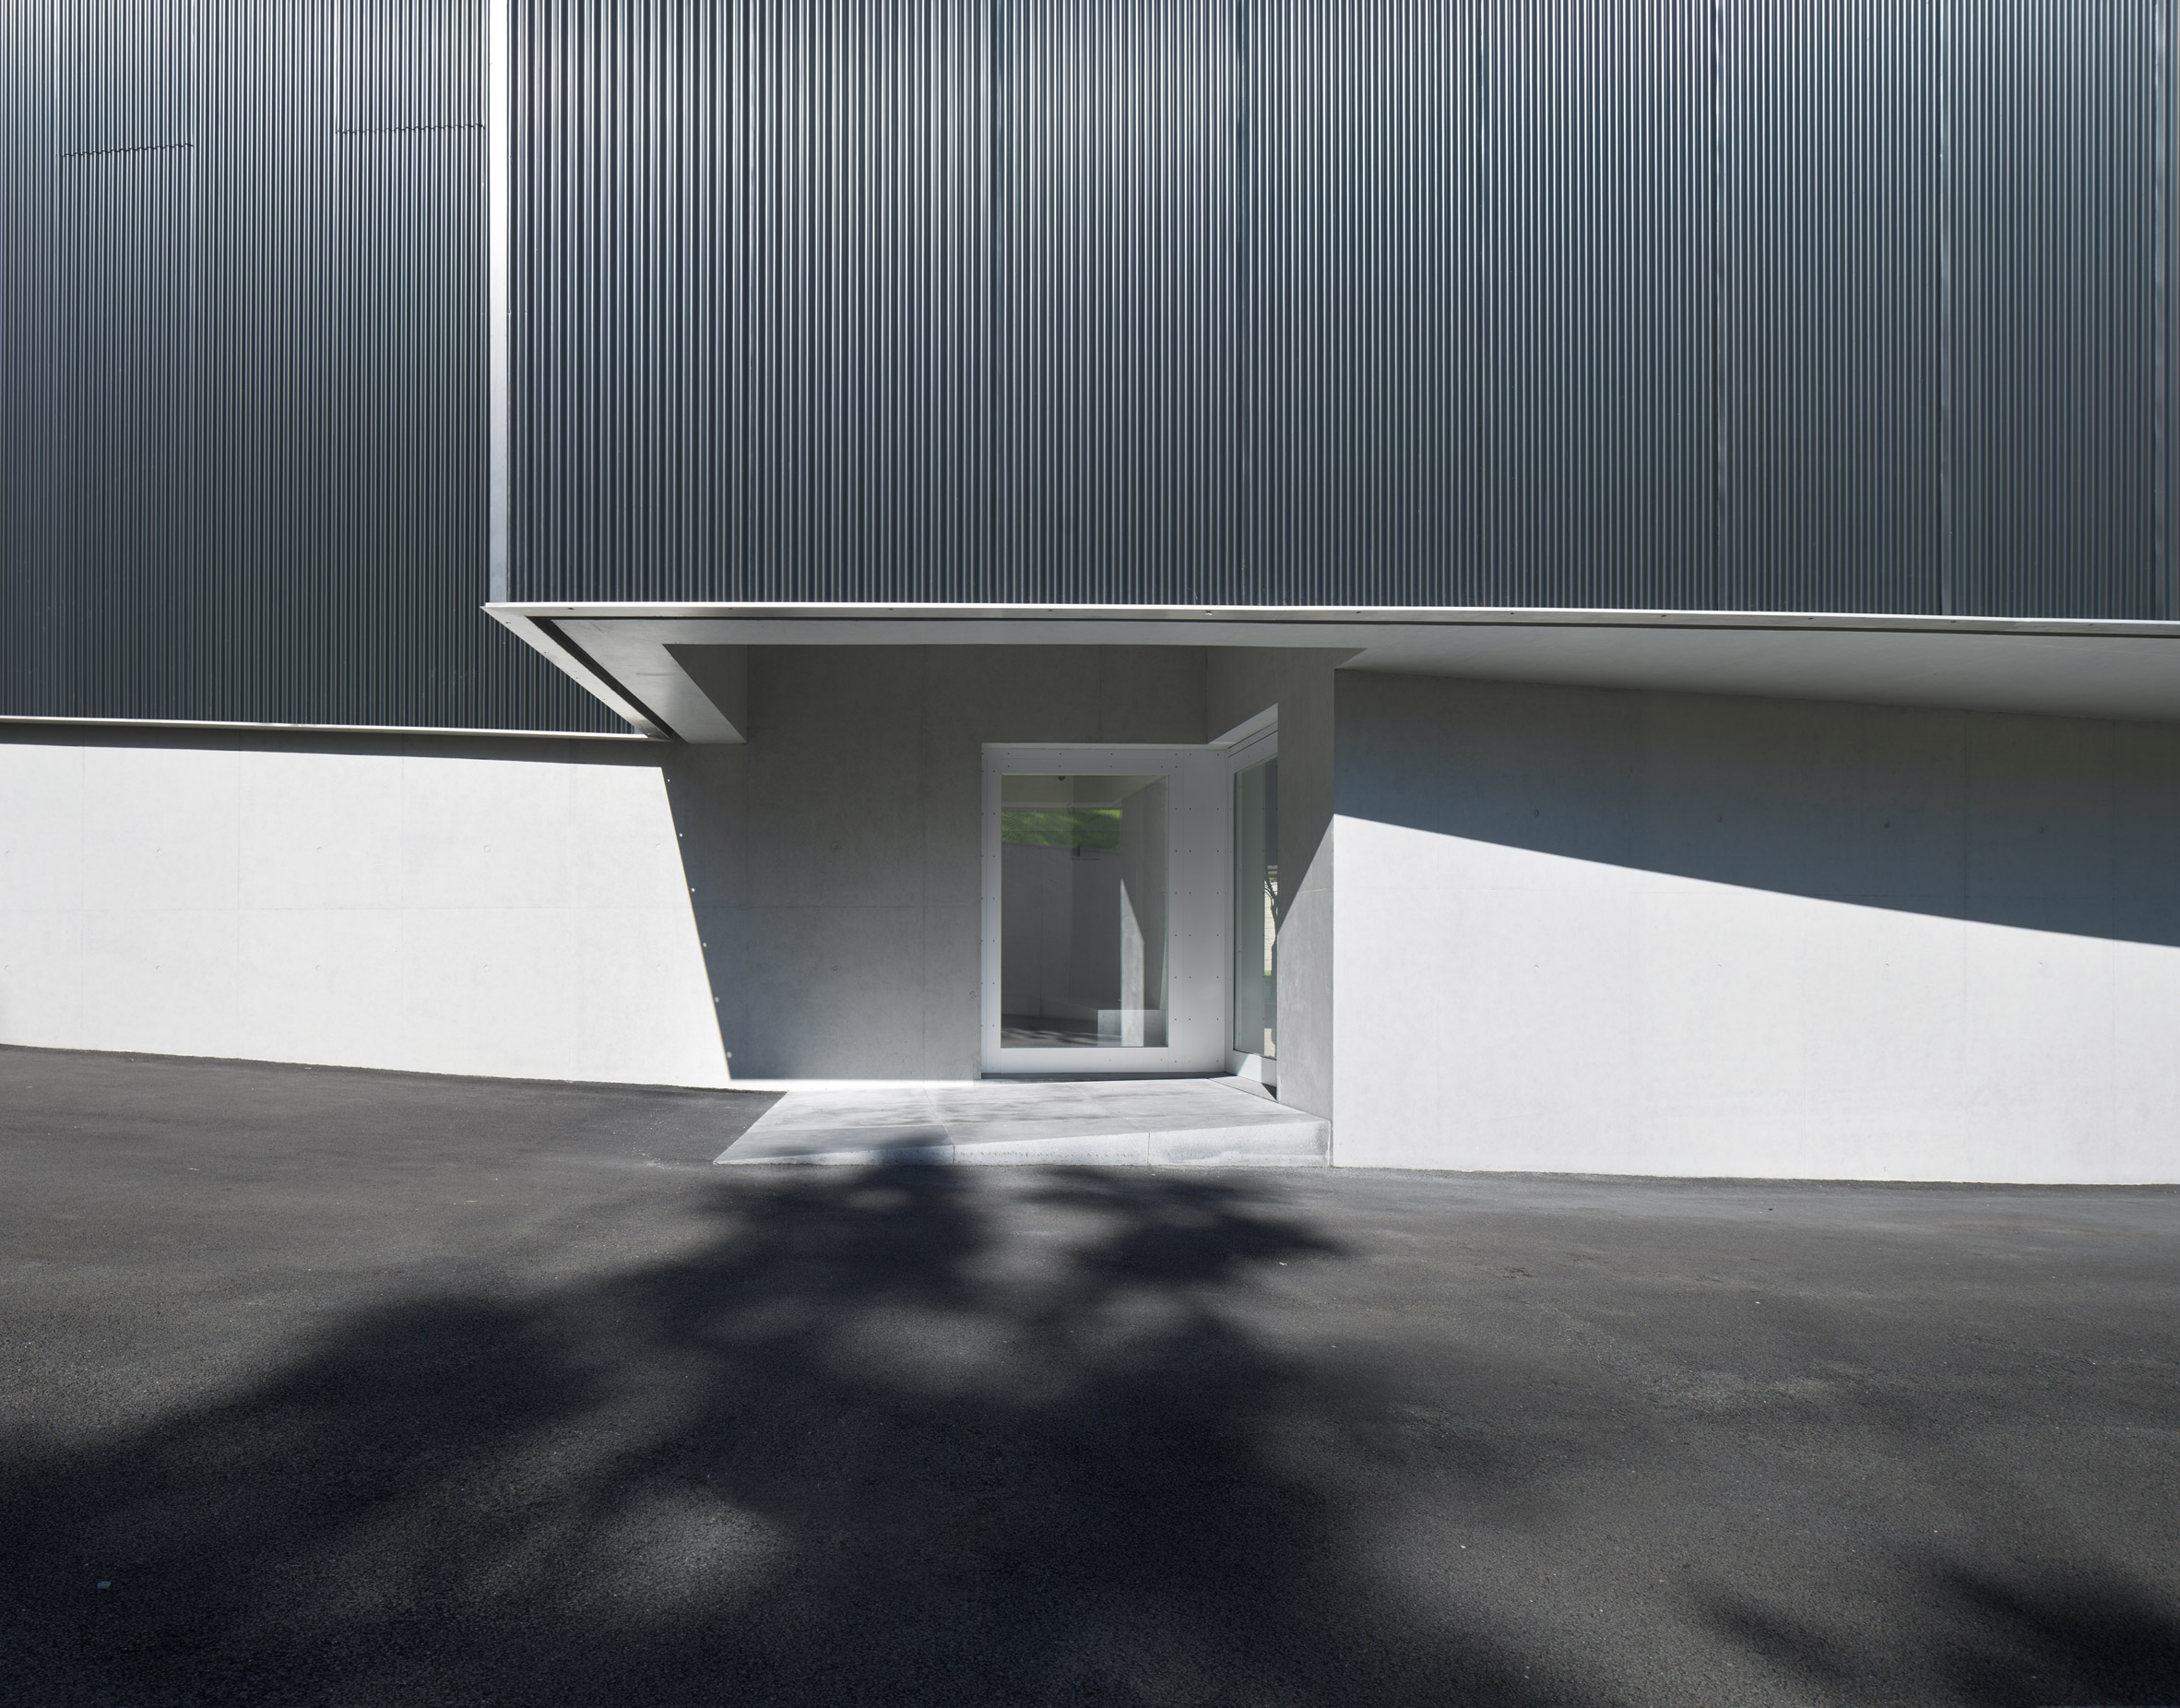 The discreet entrance to the Humao Museum of Art and Education by Álvaro Siza and Carlos Castanheira